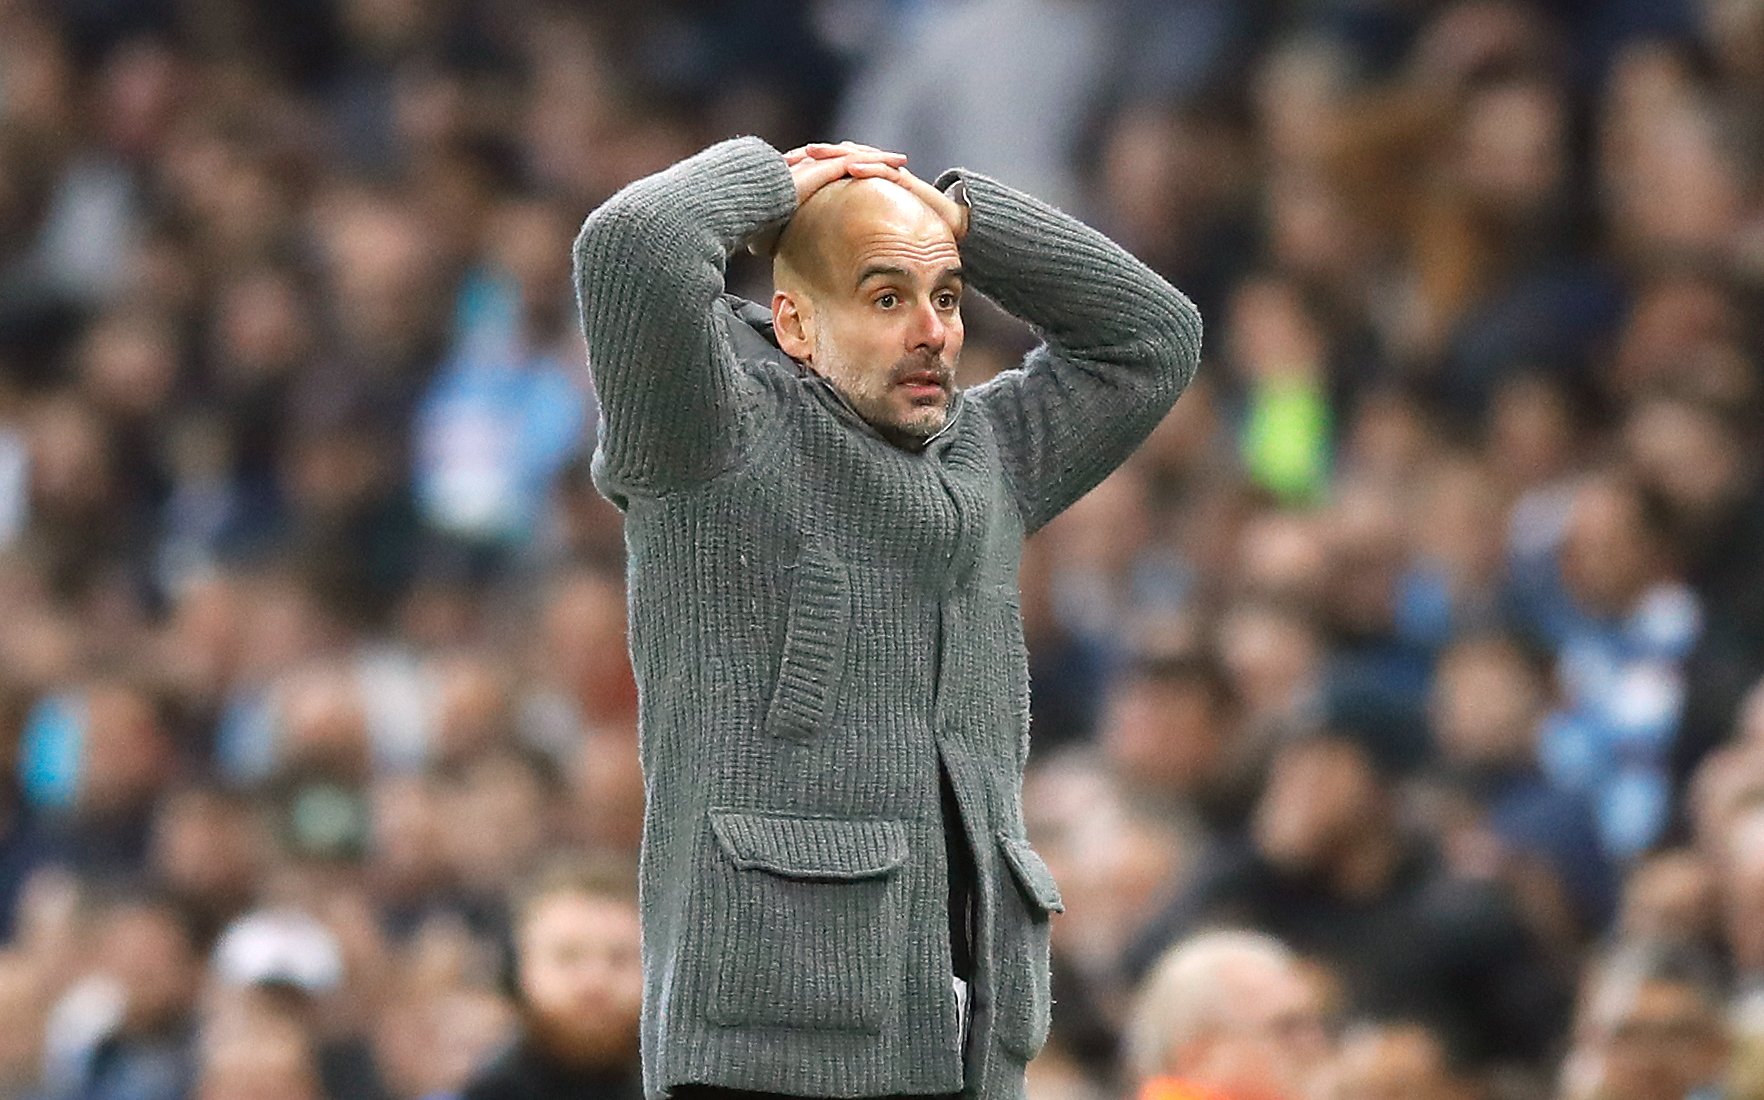 Pep Guardiola can't believe it as the goal is ruled out